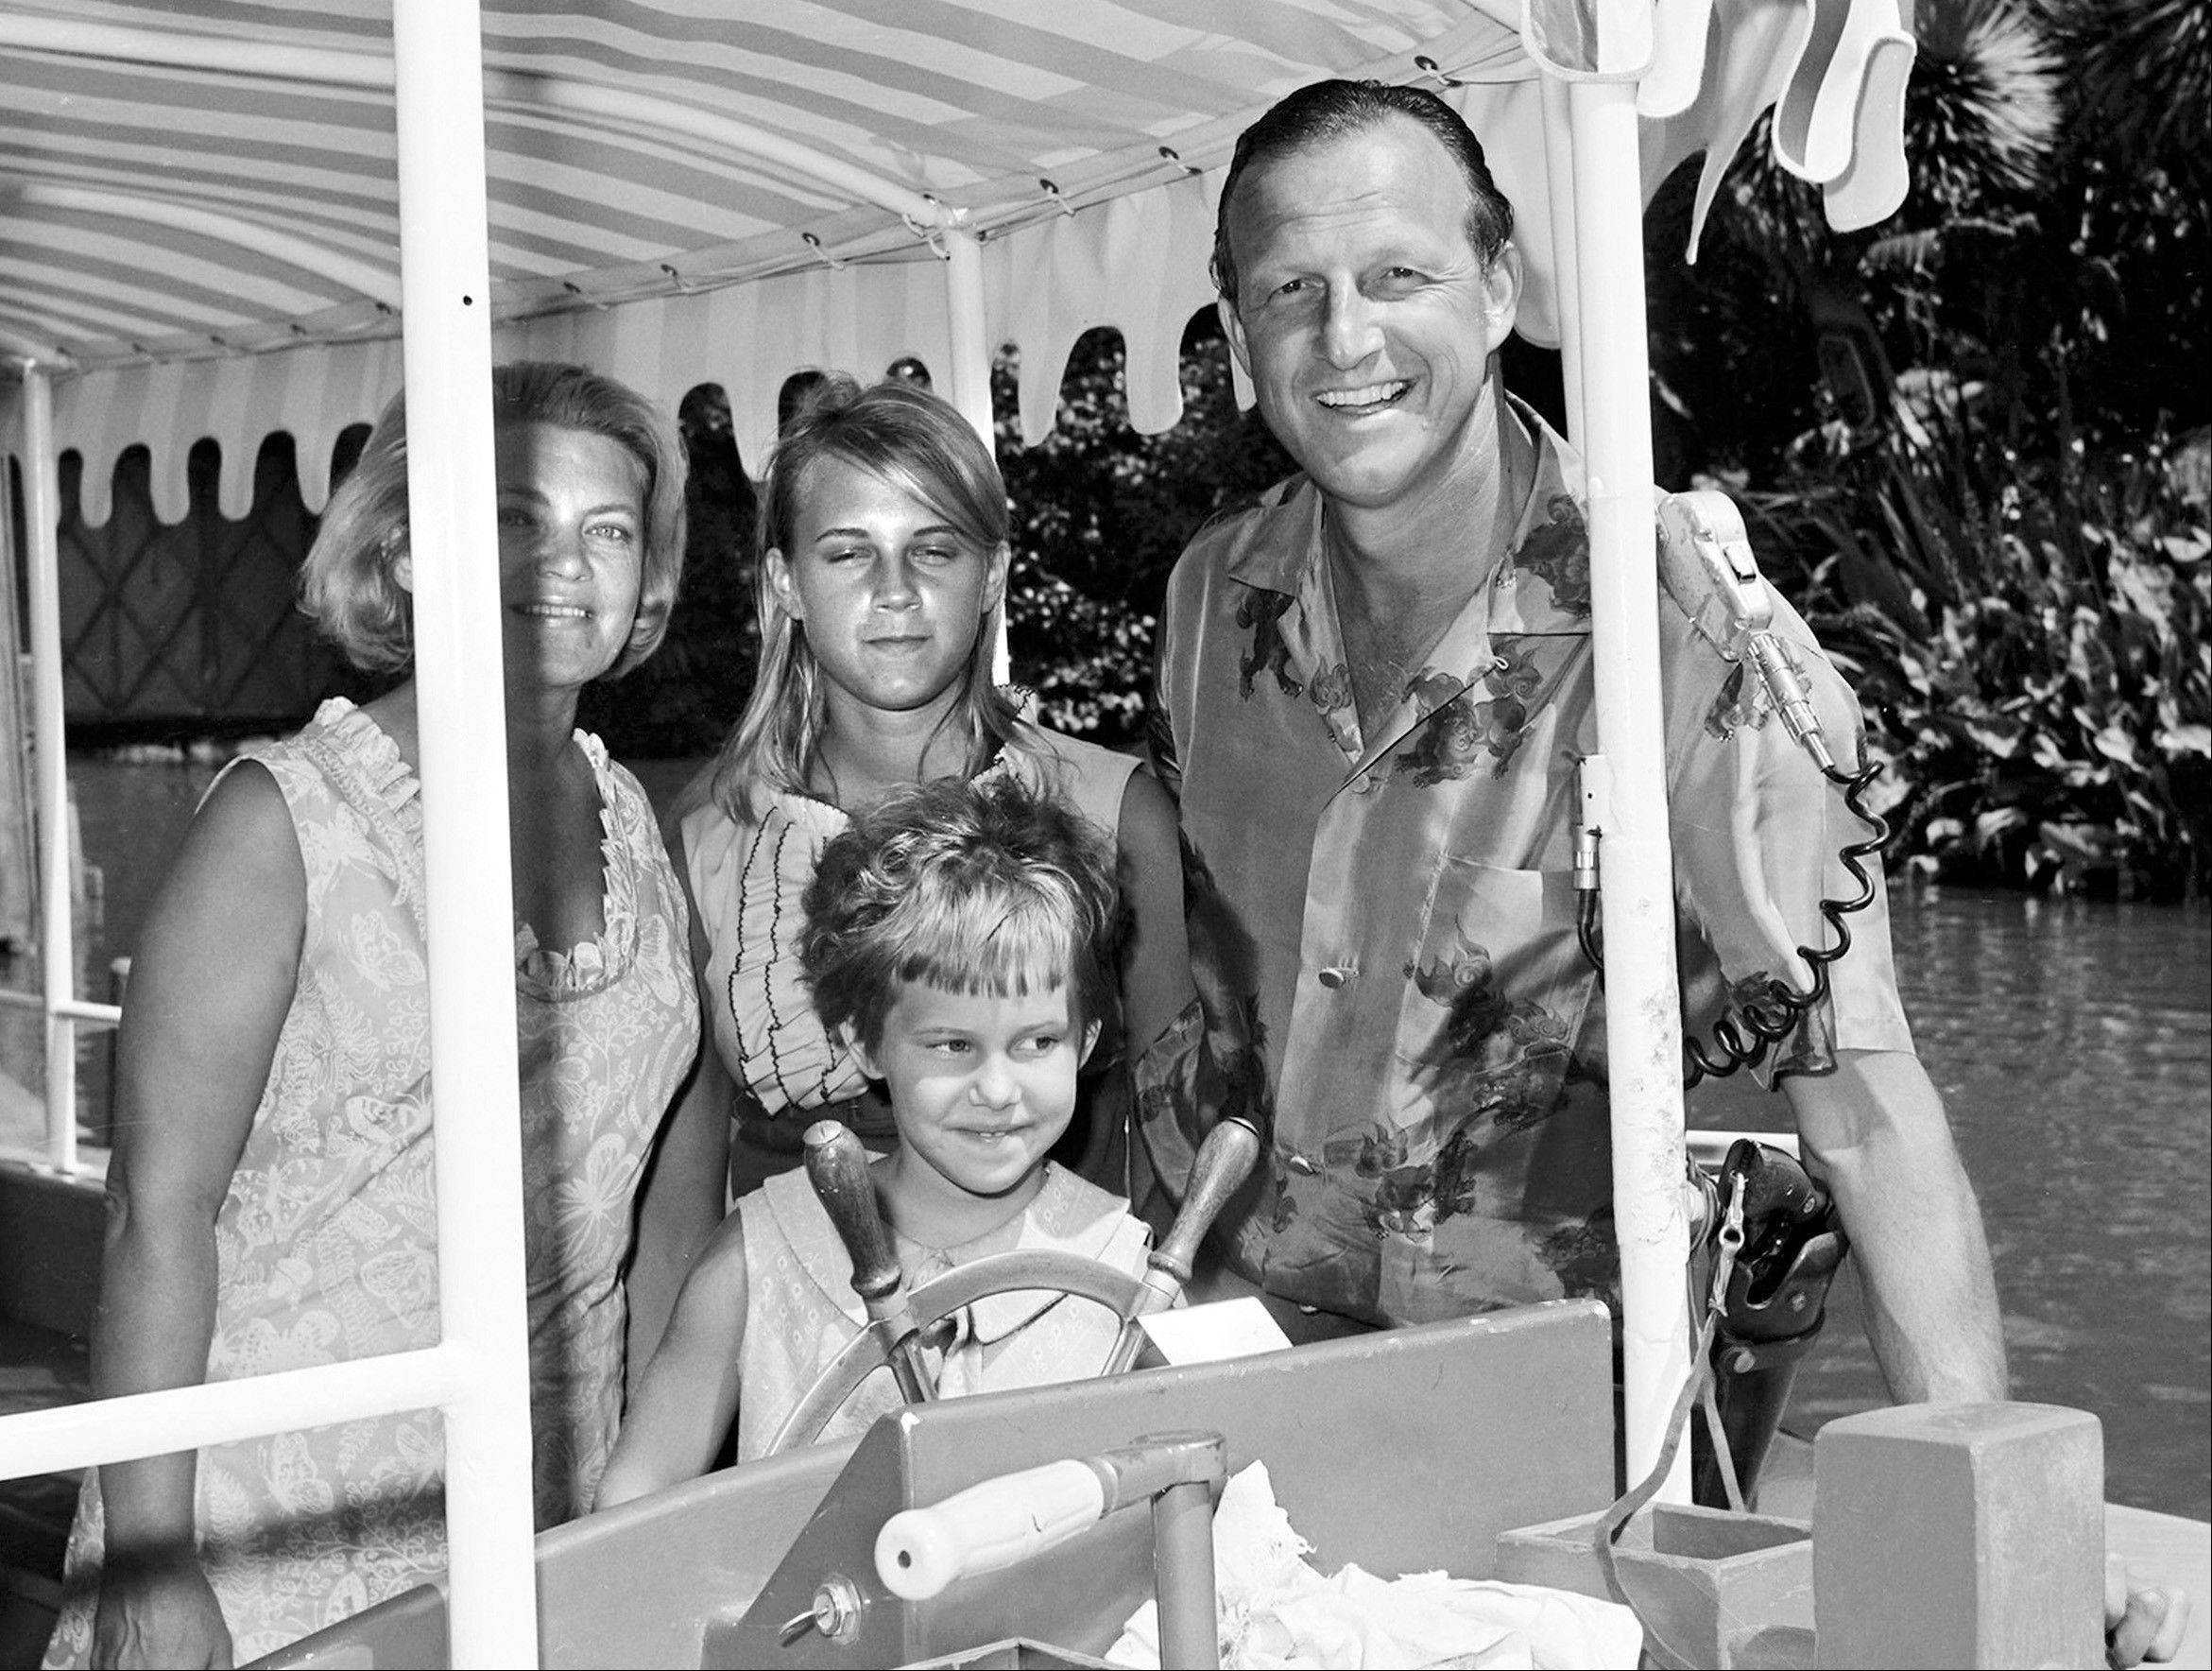 In this July 1965 photo provided by Disneyland, former St. Louis Cardinals' baseball players Stan Musial and his family pose for a photo on the Jungle Cruise attraction at Disneyland in Anaheim, Calif. Musial, one of baseball's greatest hitters and a Hall of Famer with the Cardinals for more than two decades, died Saturday, Jan. 19, 2013, the team announced. He was 92.